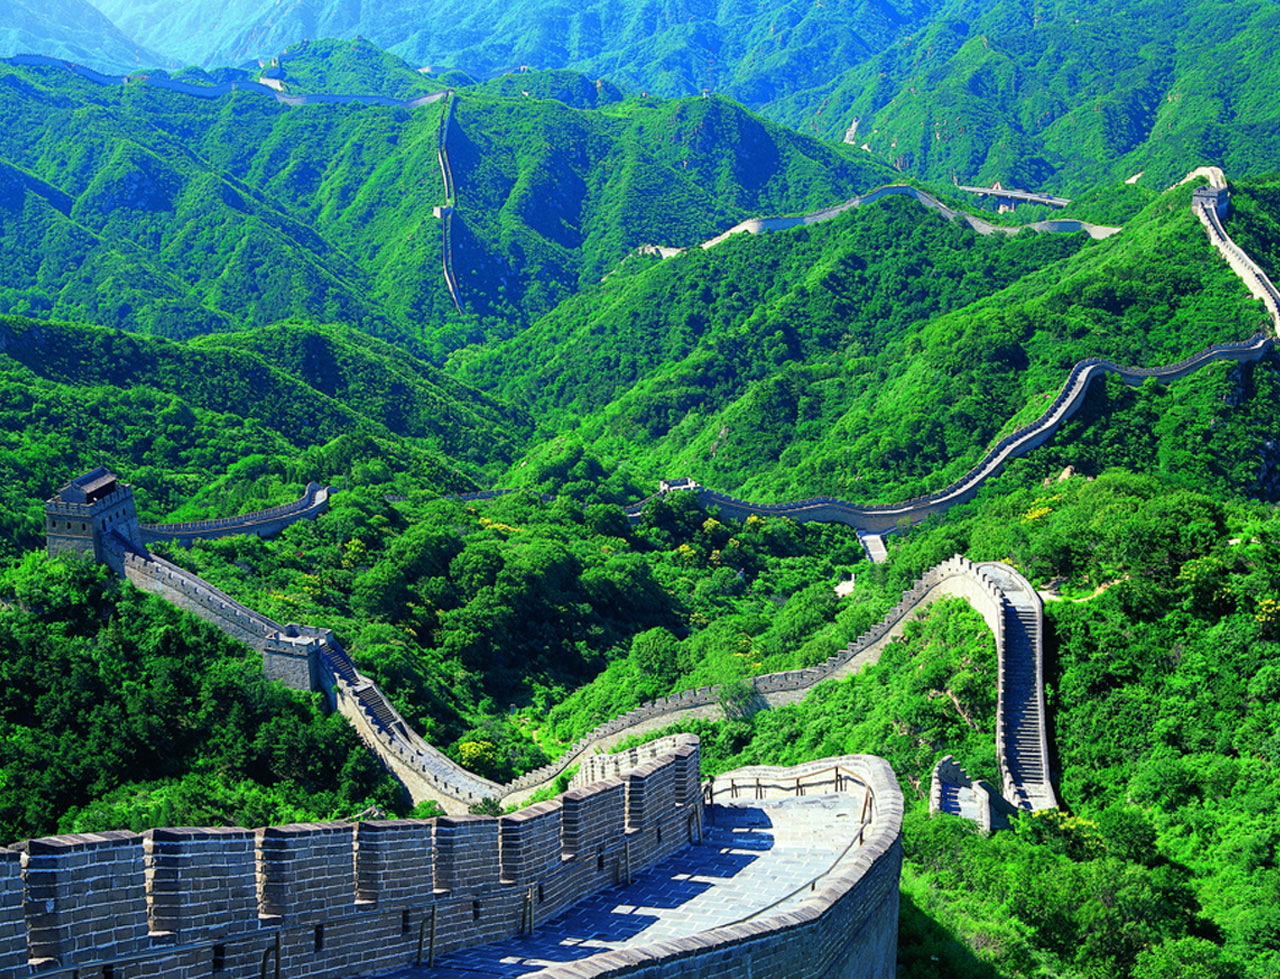 The View on a Great Wall in China 2705.33 Kb